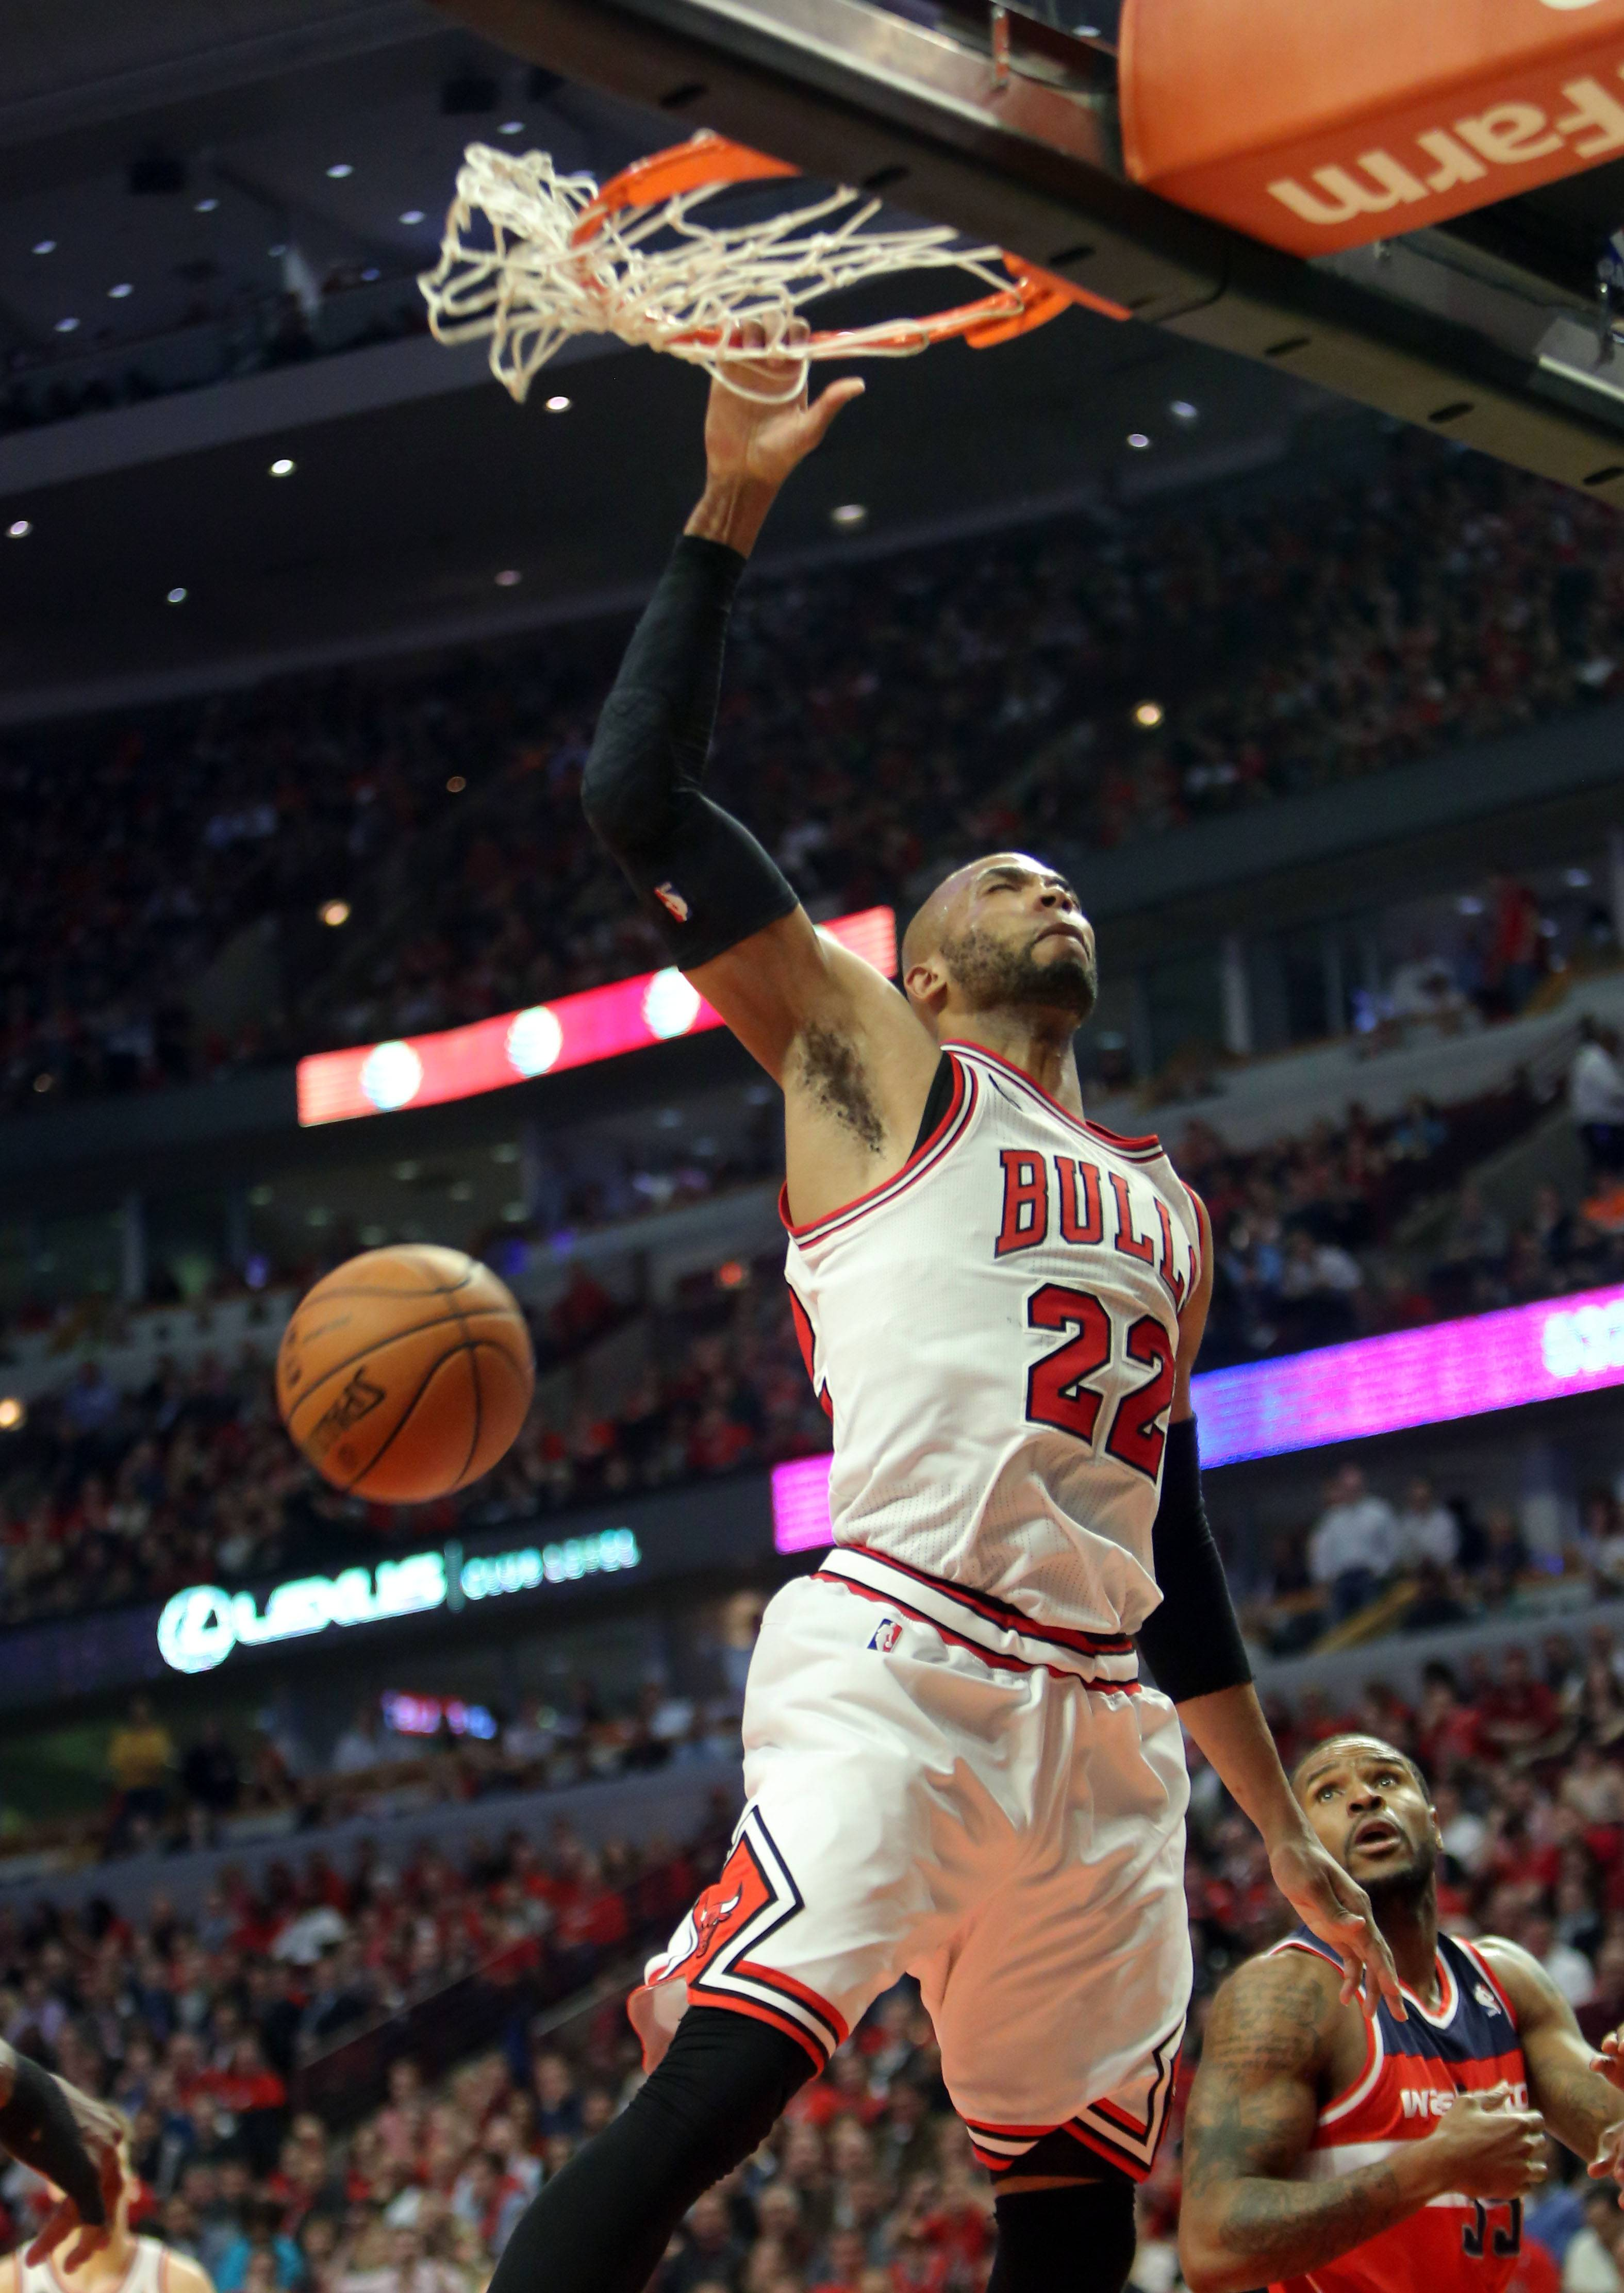 Chicago Bulls forward Taj Gibson goes in for a dunk.